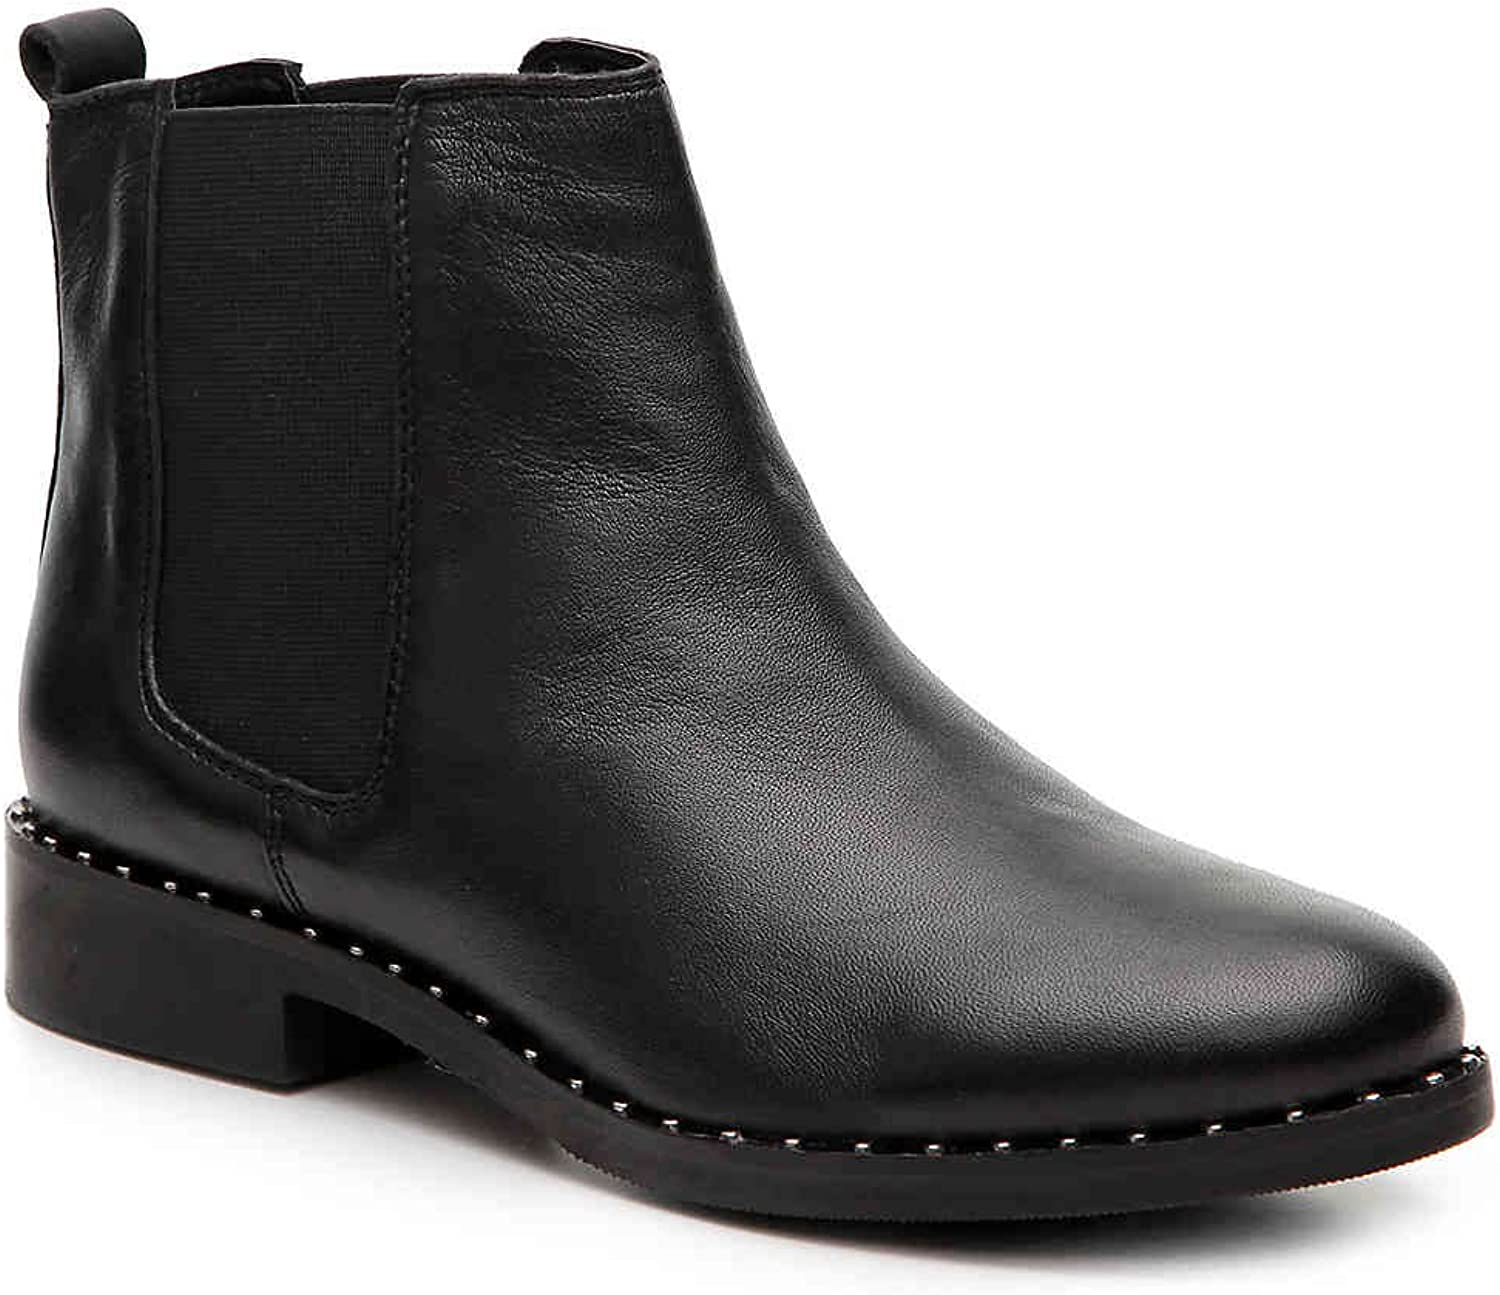 Steve Madden Womens Indya Chelsea Ankle Boots Black Leather Pull on Size 5.5 M